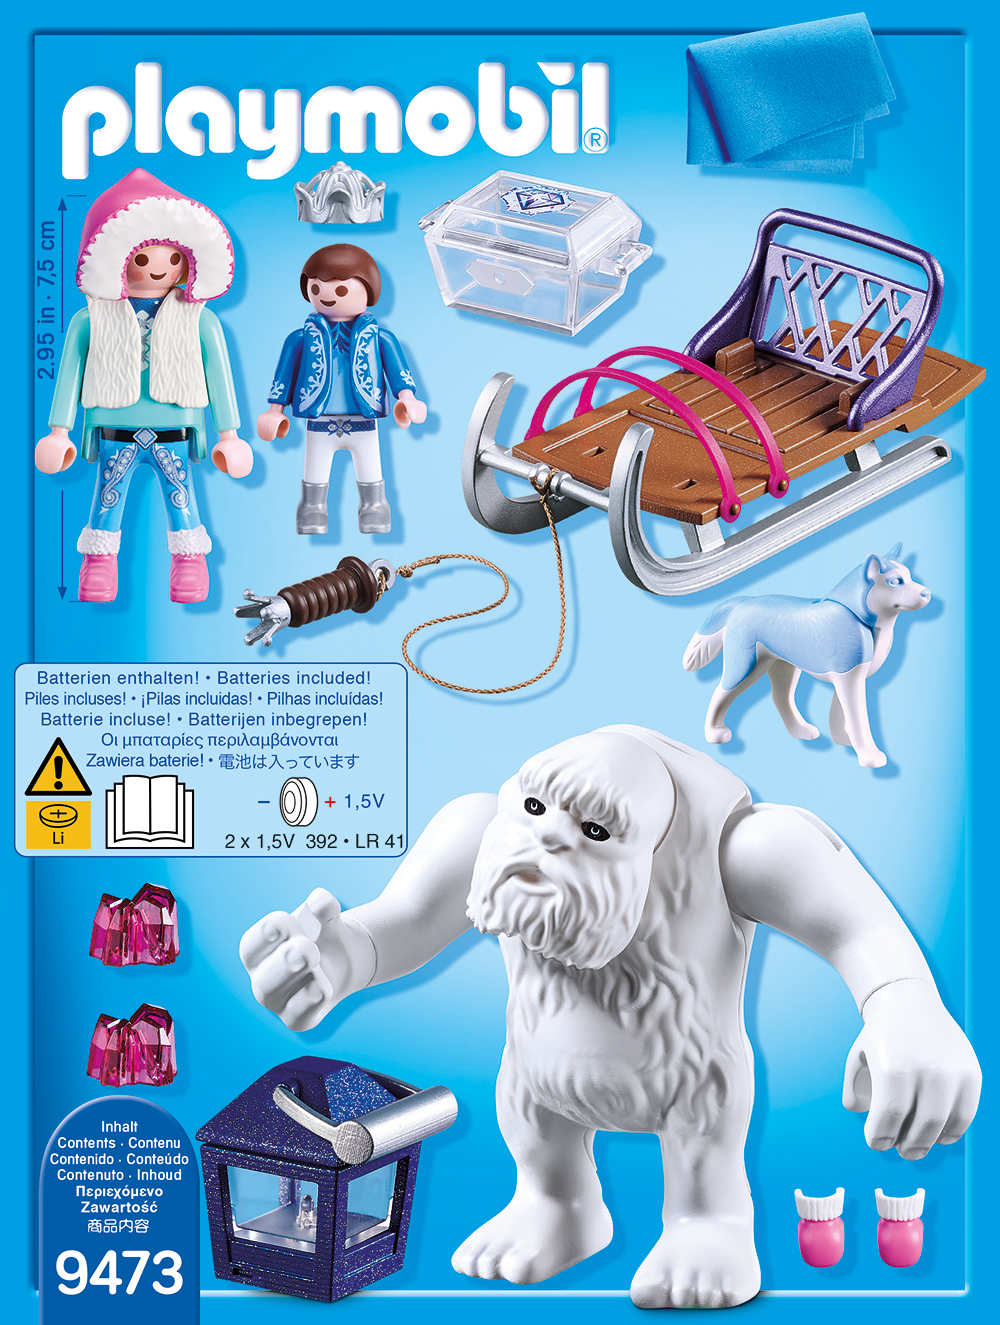 Yeti cu sanie si figurine playmobil magic - 1